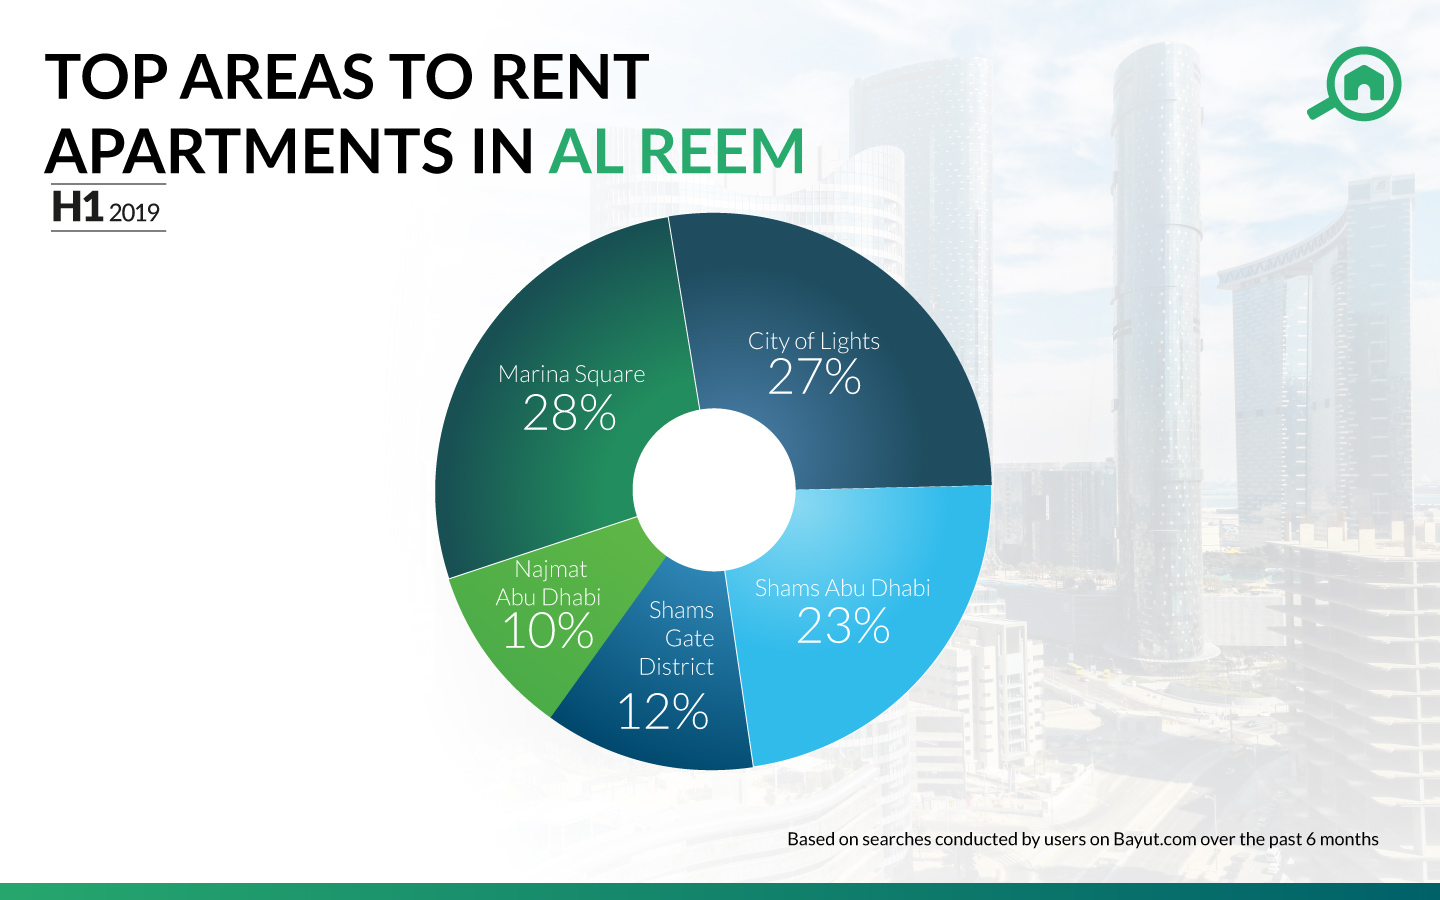 Pie chart showing the most popular areas with apartments for sale in Al Reem Island